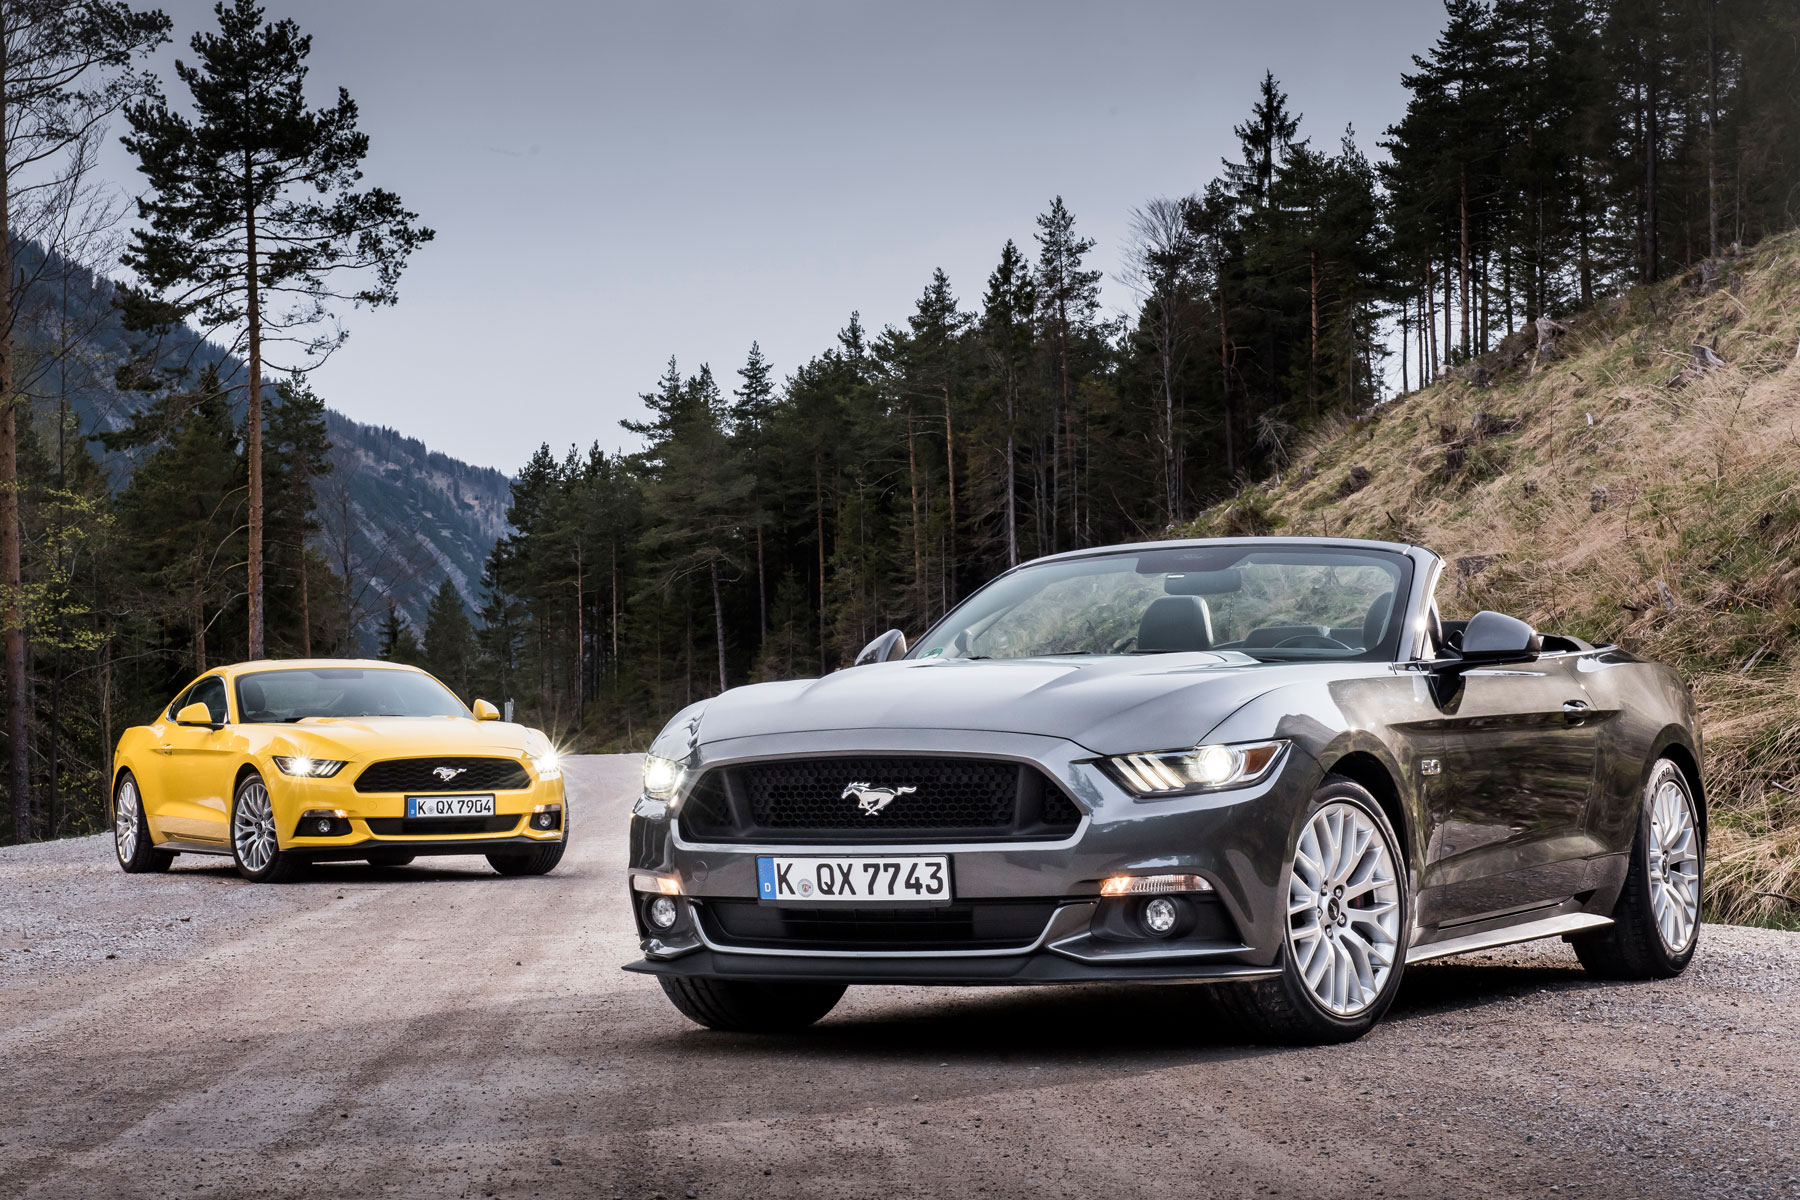 Verdict: Ford Mustang (2015)